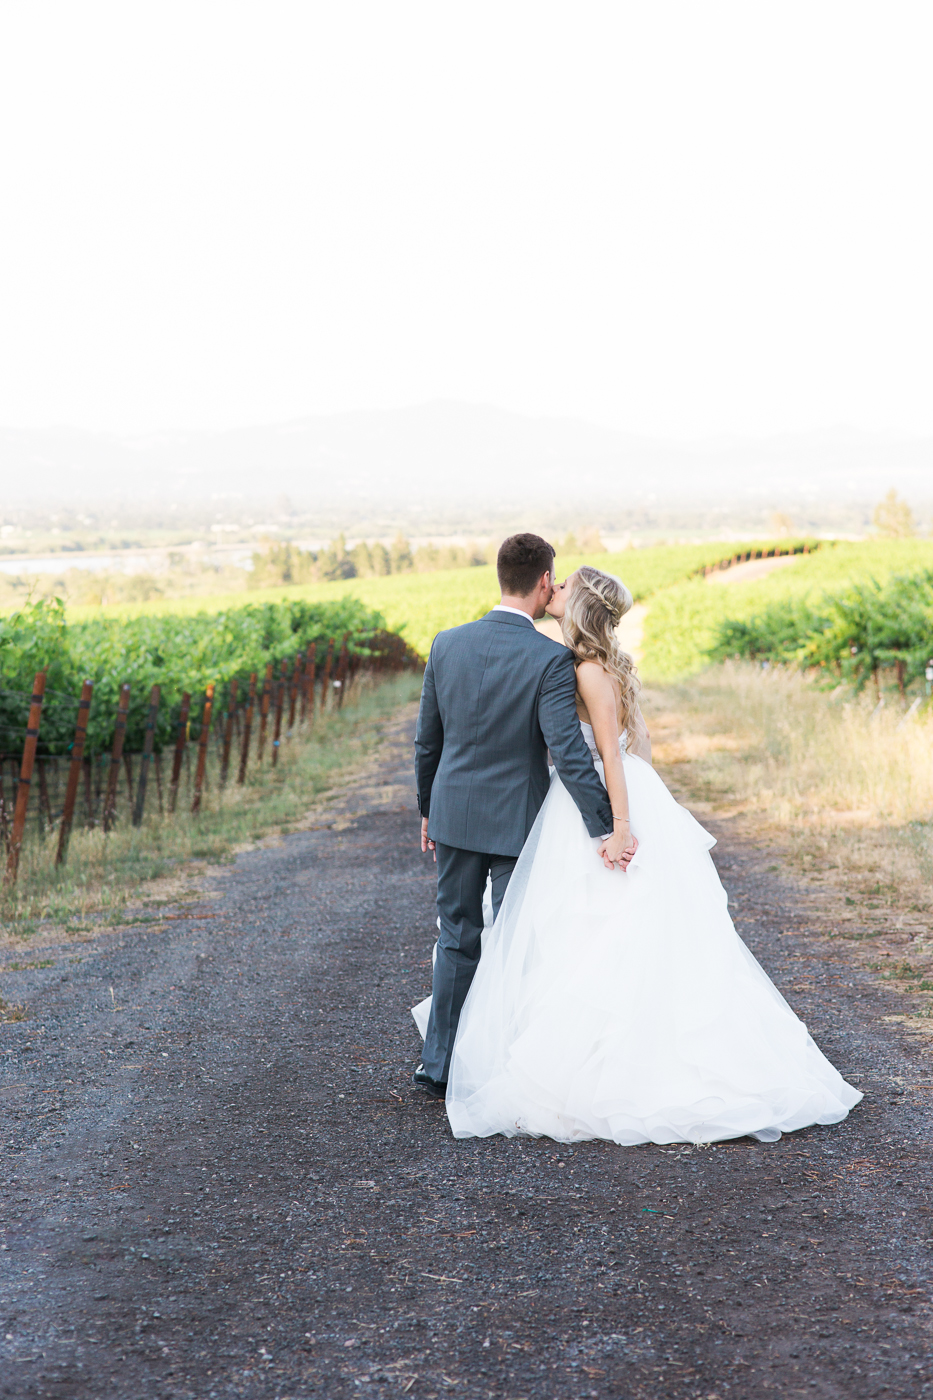 vine hill house, vine hill house wedding, sebastopol wedding, sebastopol wedding photographer, maria villano photography, wine country wedding, northern california wedding, vine hill house wedding photographer, sebastopol wedding venue, bay area wedding photographer